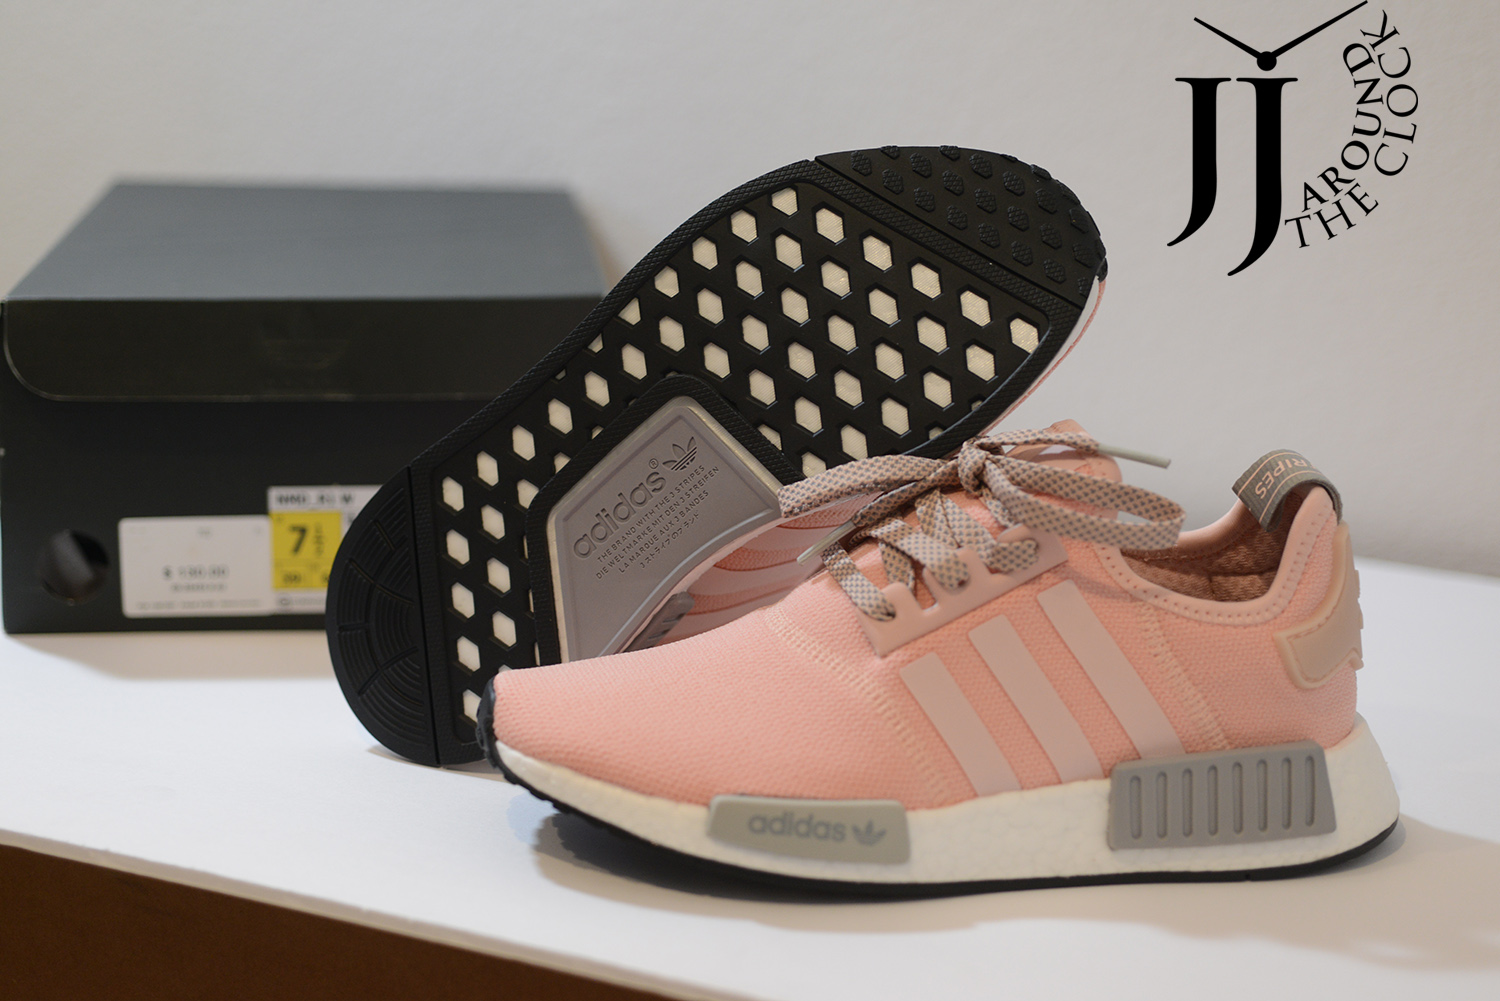 New Adidas Women Nmd R1 Clear Onix Vapour Pink Grey Boost